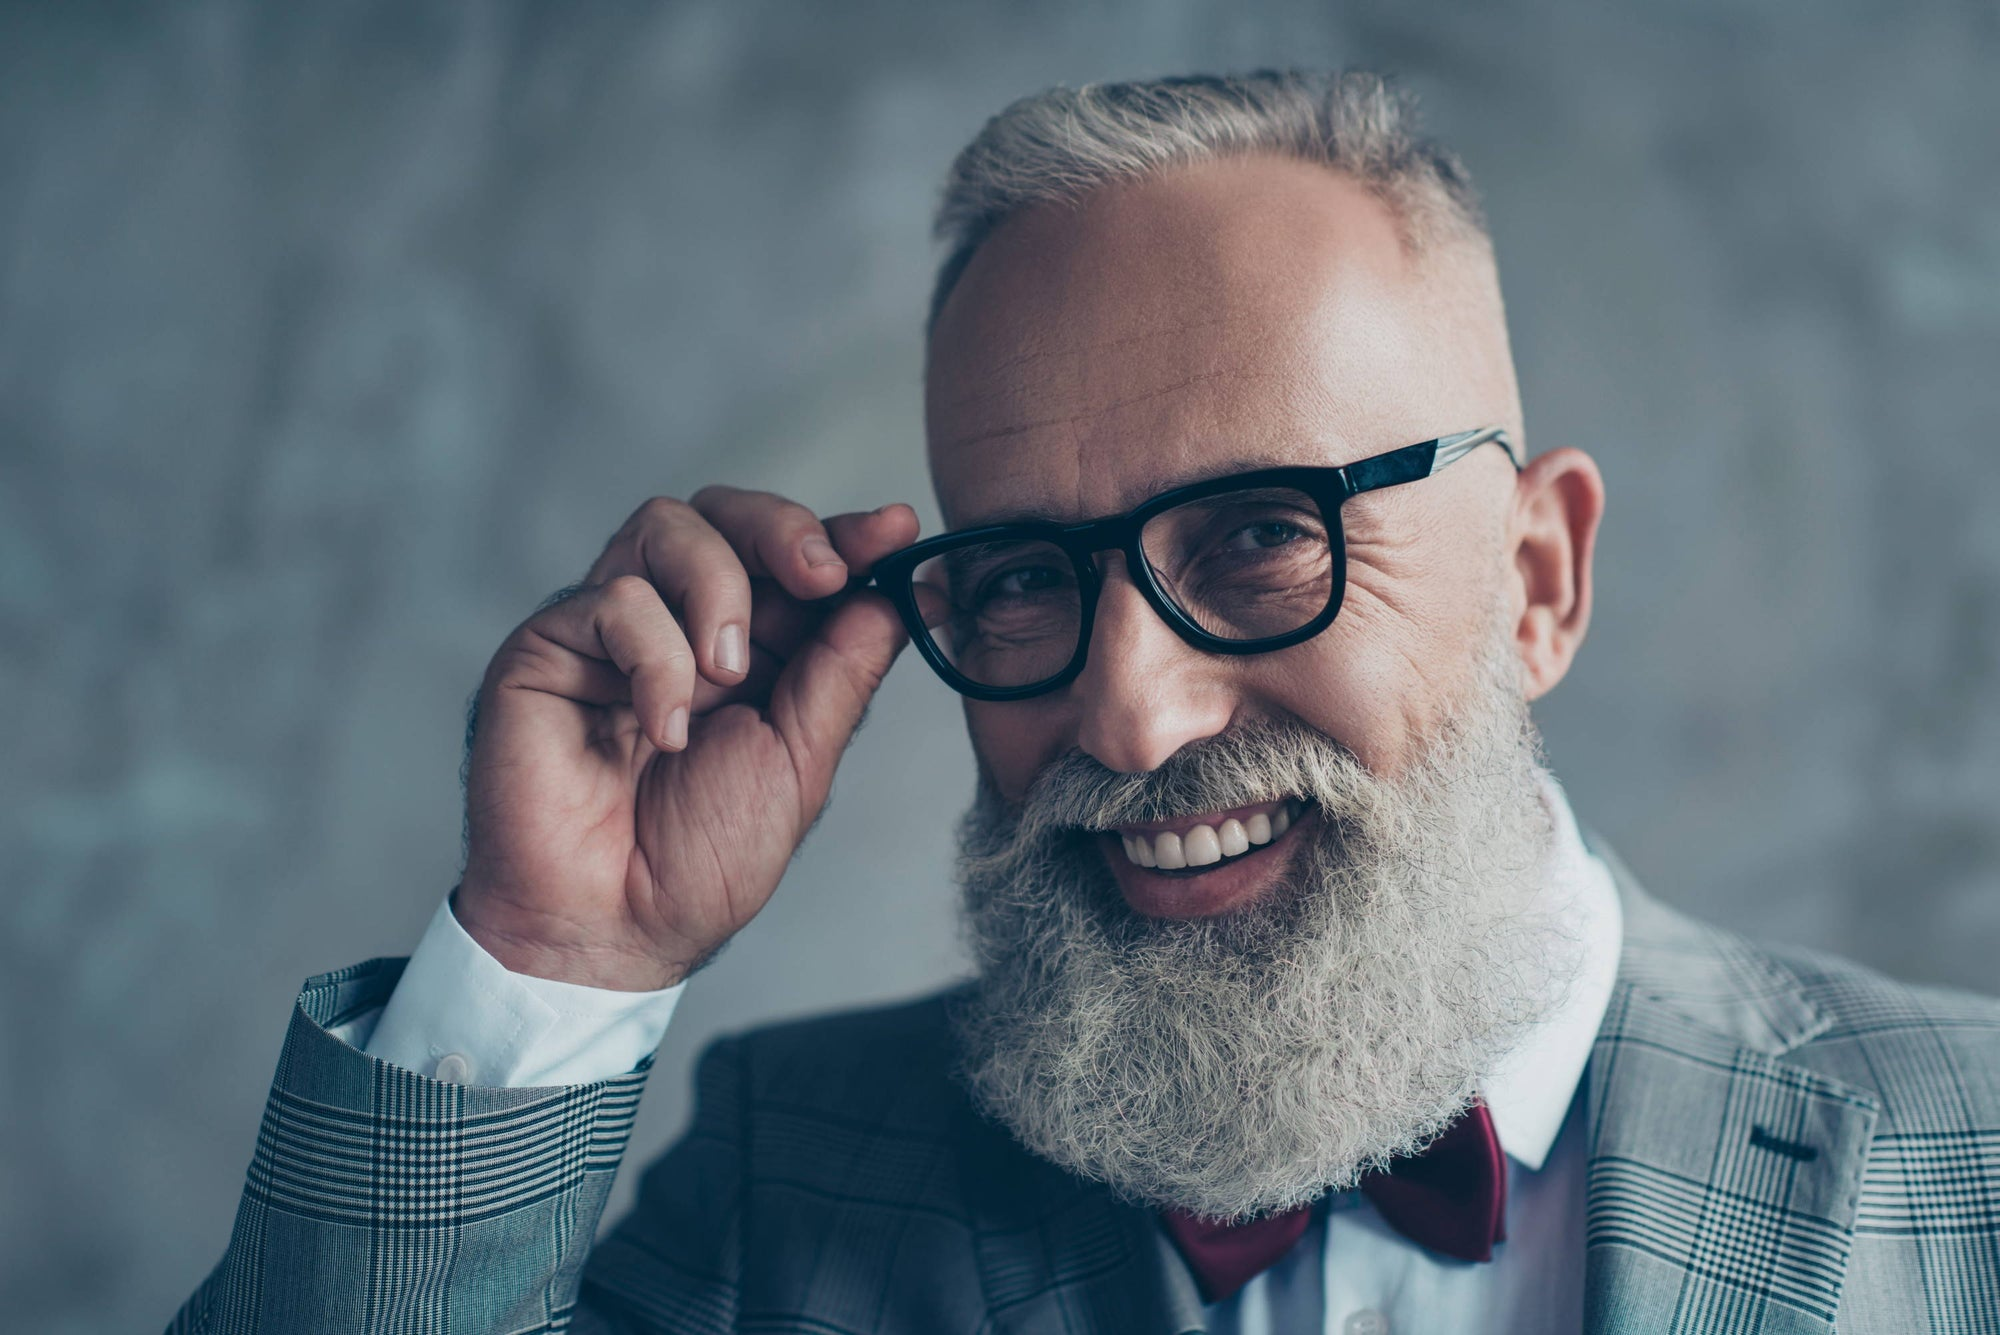 Hipster Chic - Lingo Luxe Menswear Persona